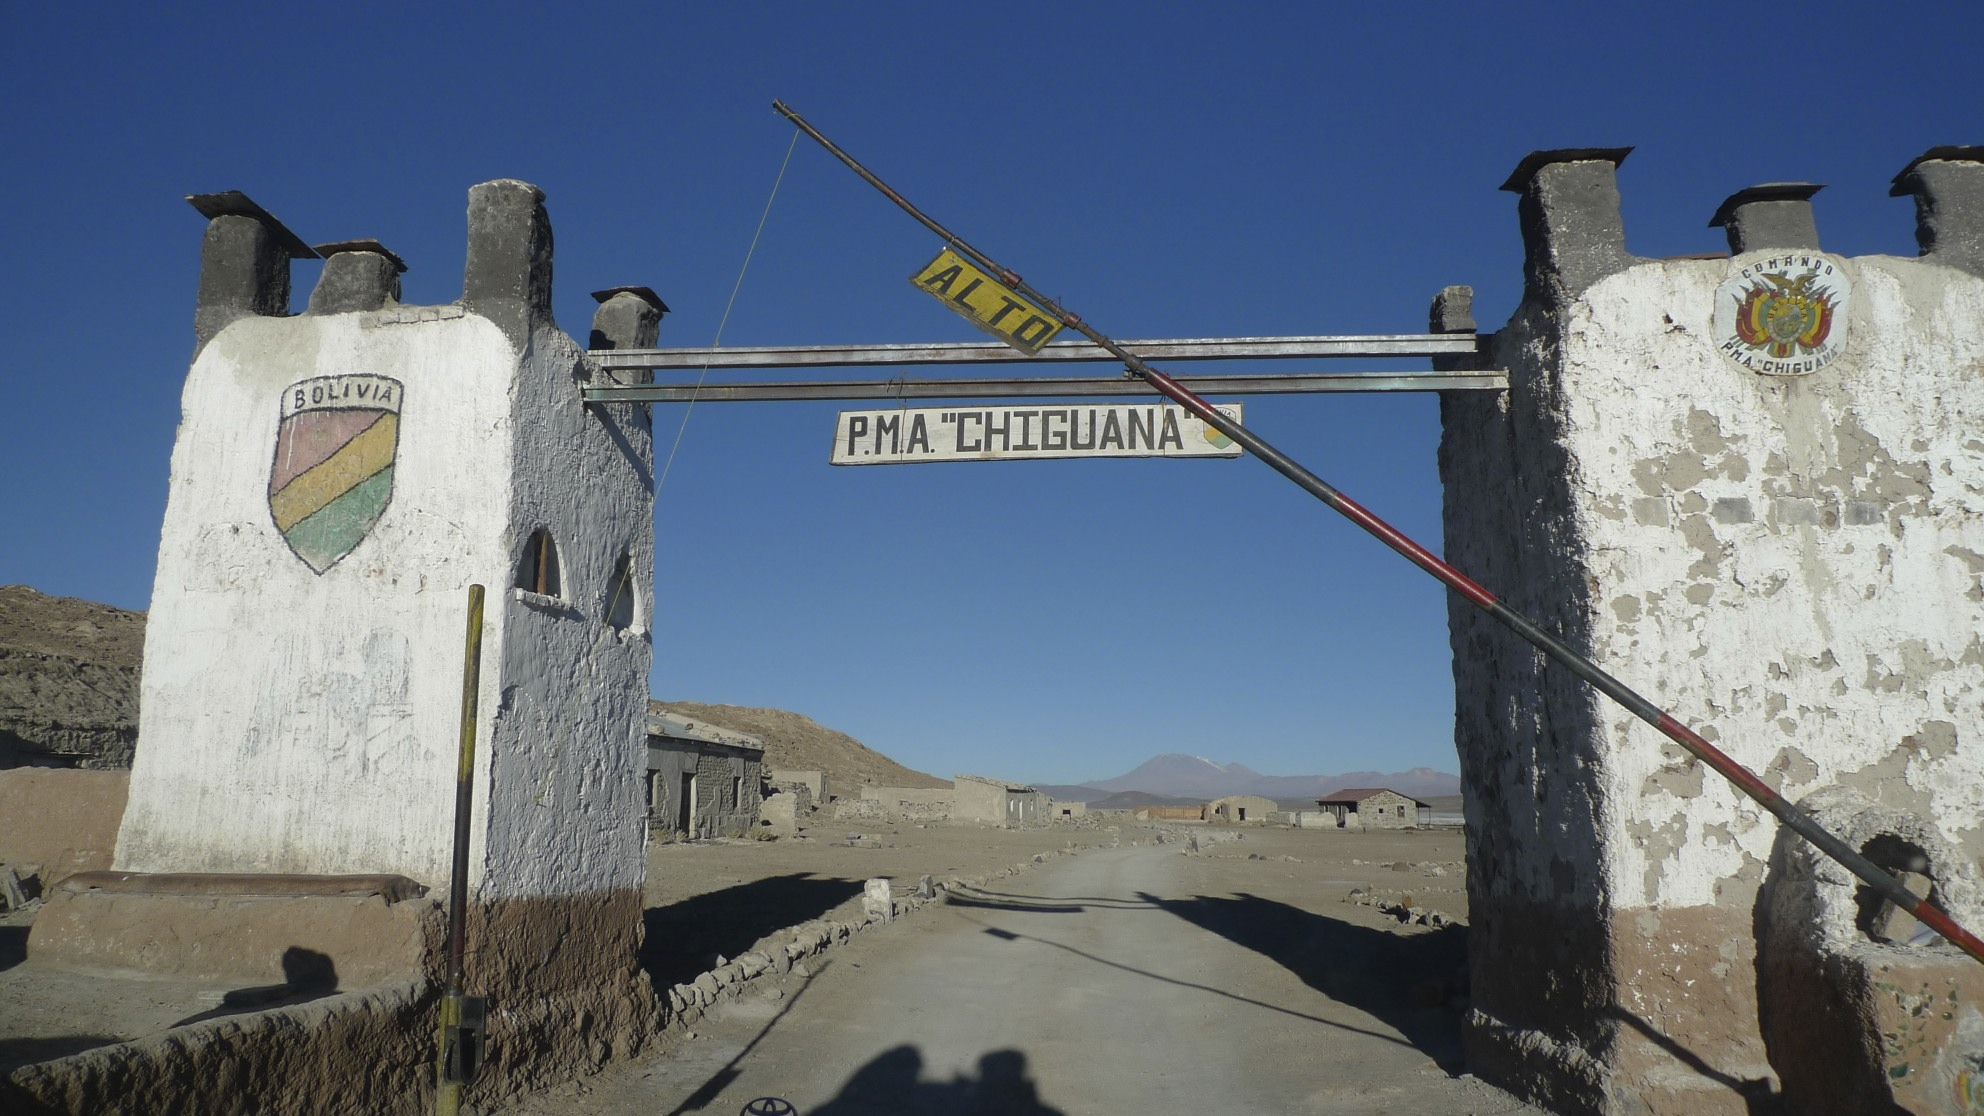 Military outpost in the Atacama